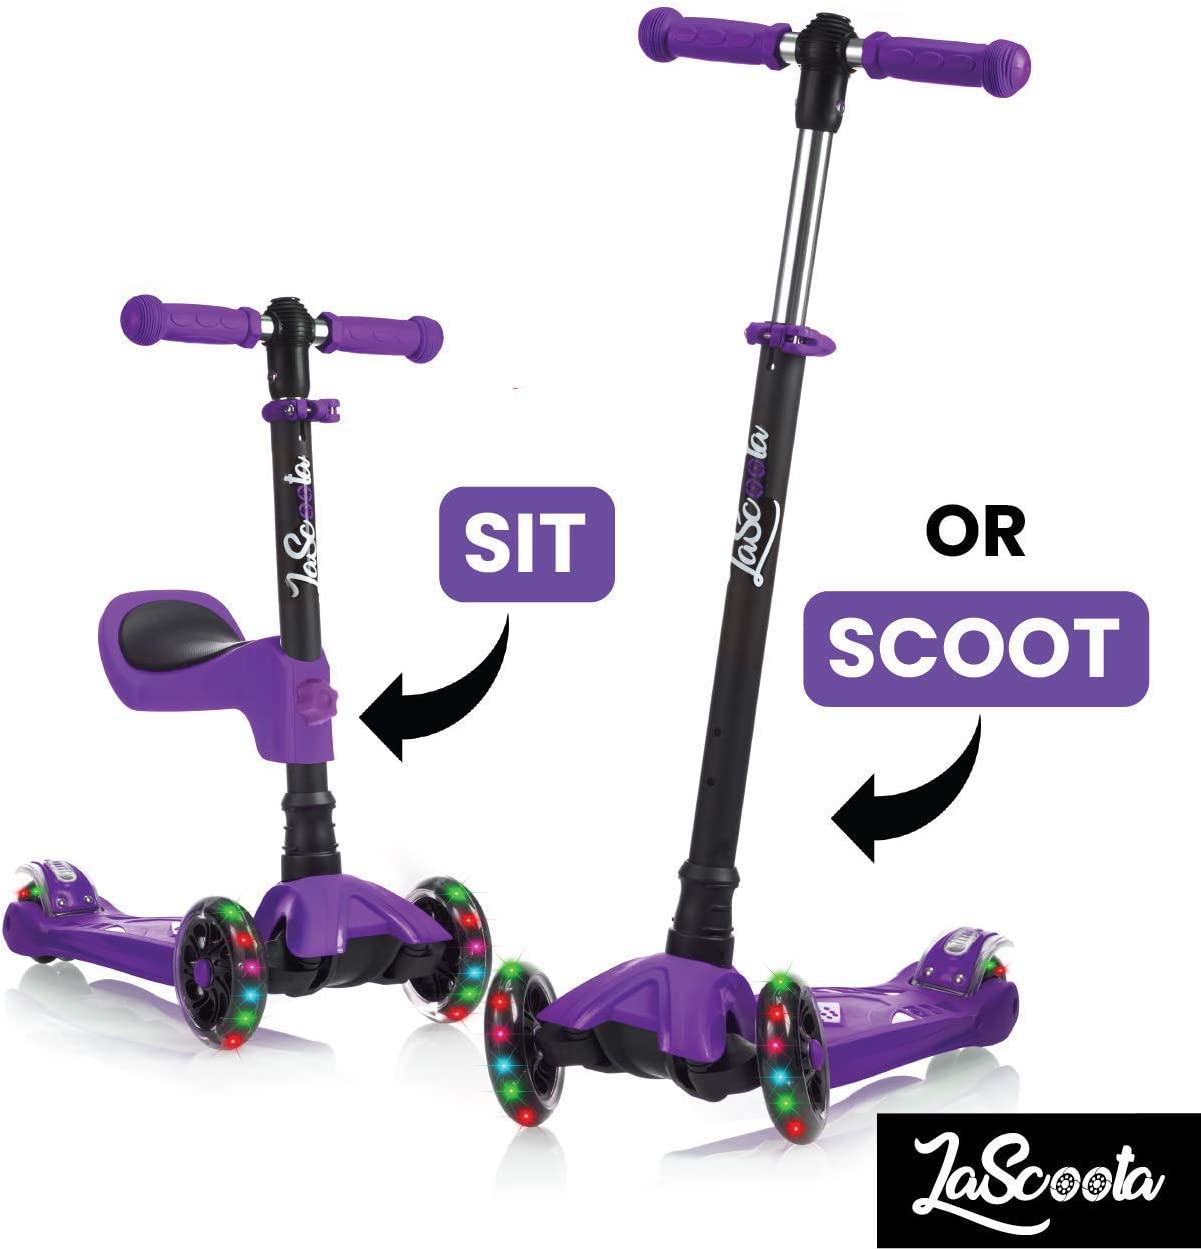 Lascoota 2-in-1 Kick Scooter with Removable Seat Great for Kids Toddlers Girls or Boys Adjustable Height w Extra-Wide Deck PU Flashing Wheels for Children from 2 to 14 Year-Old Renewed